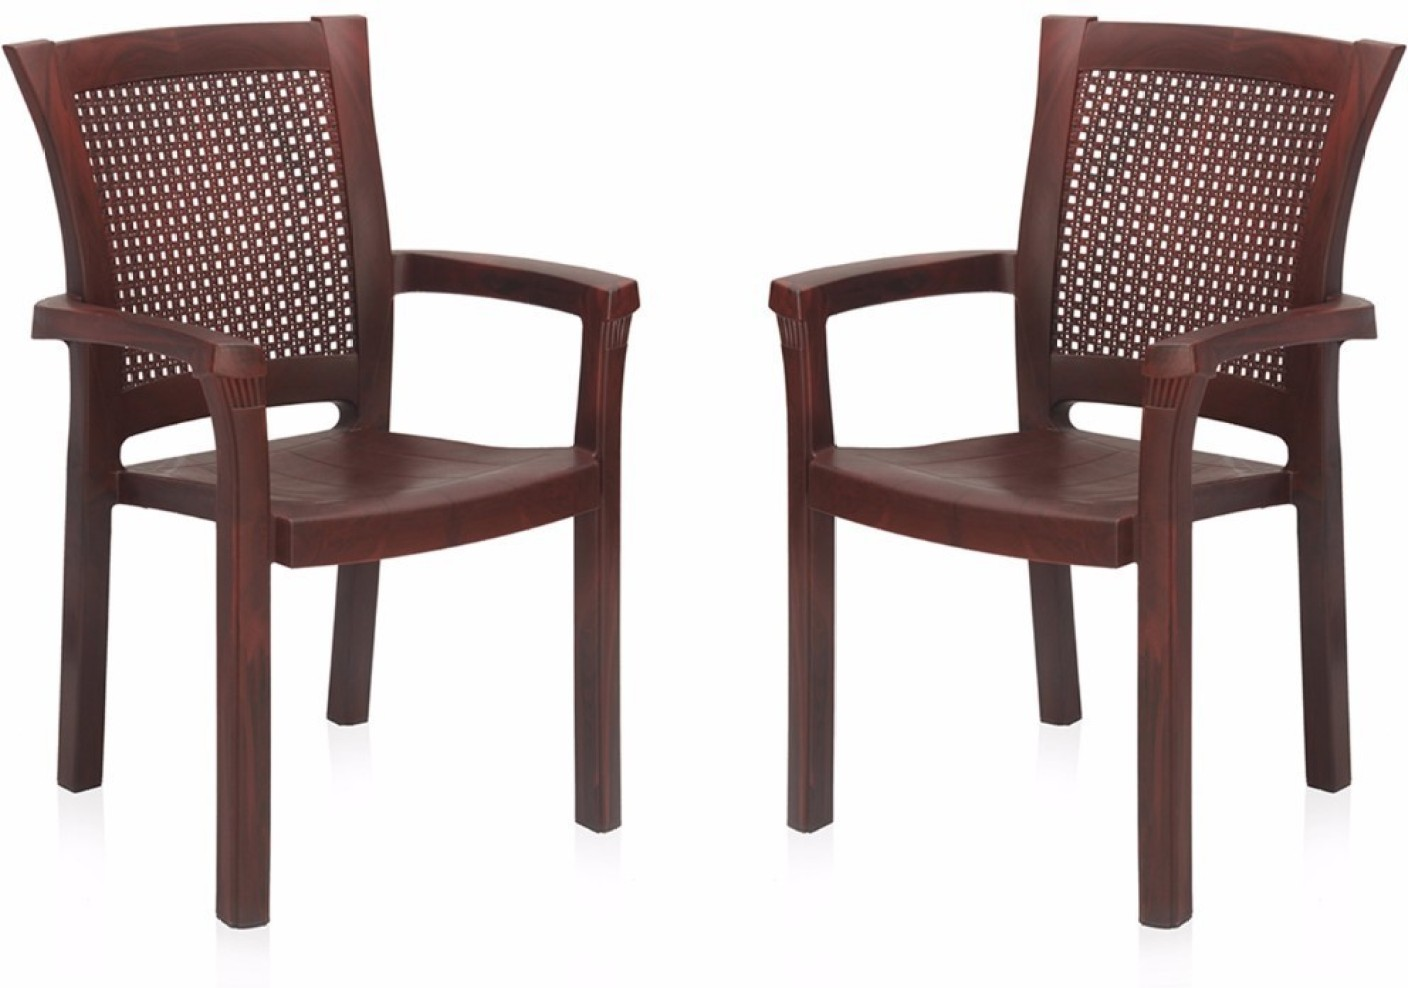 Nilkamal plastic chair - Nilkamal Dynasty Plastic Outdoor Chair Save